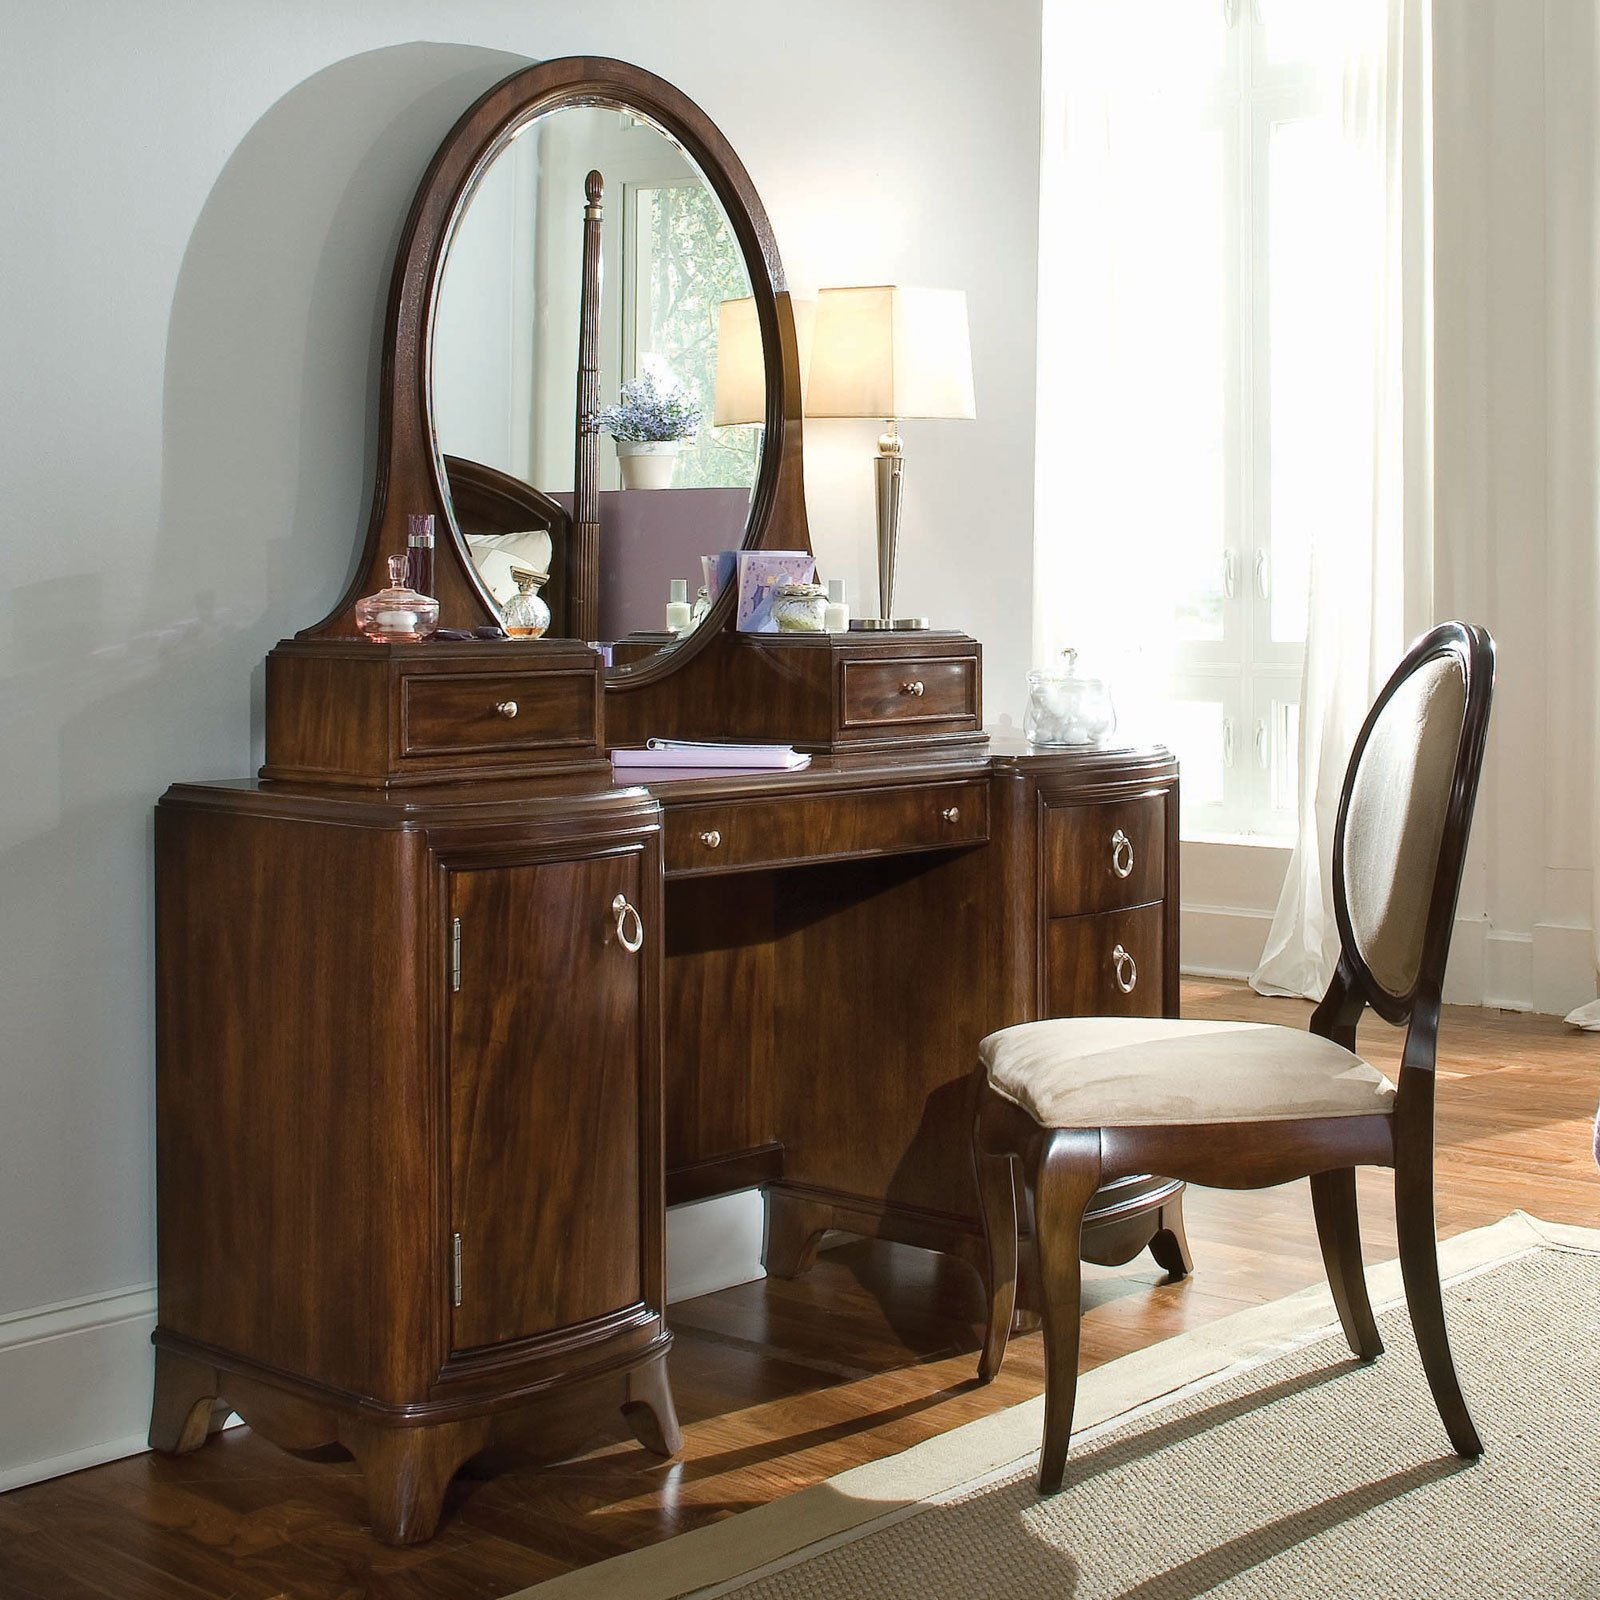 Picture of: Dark Bedroom Vanity with Drawers